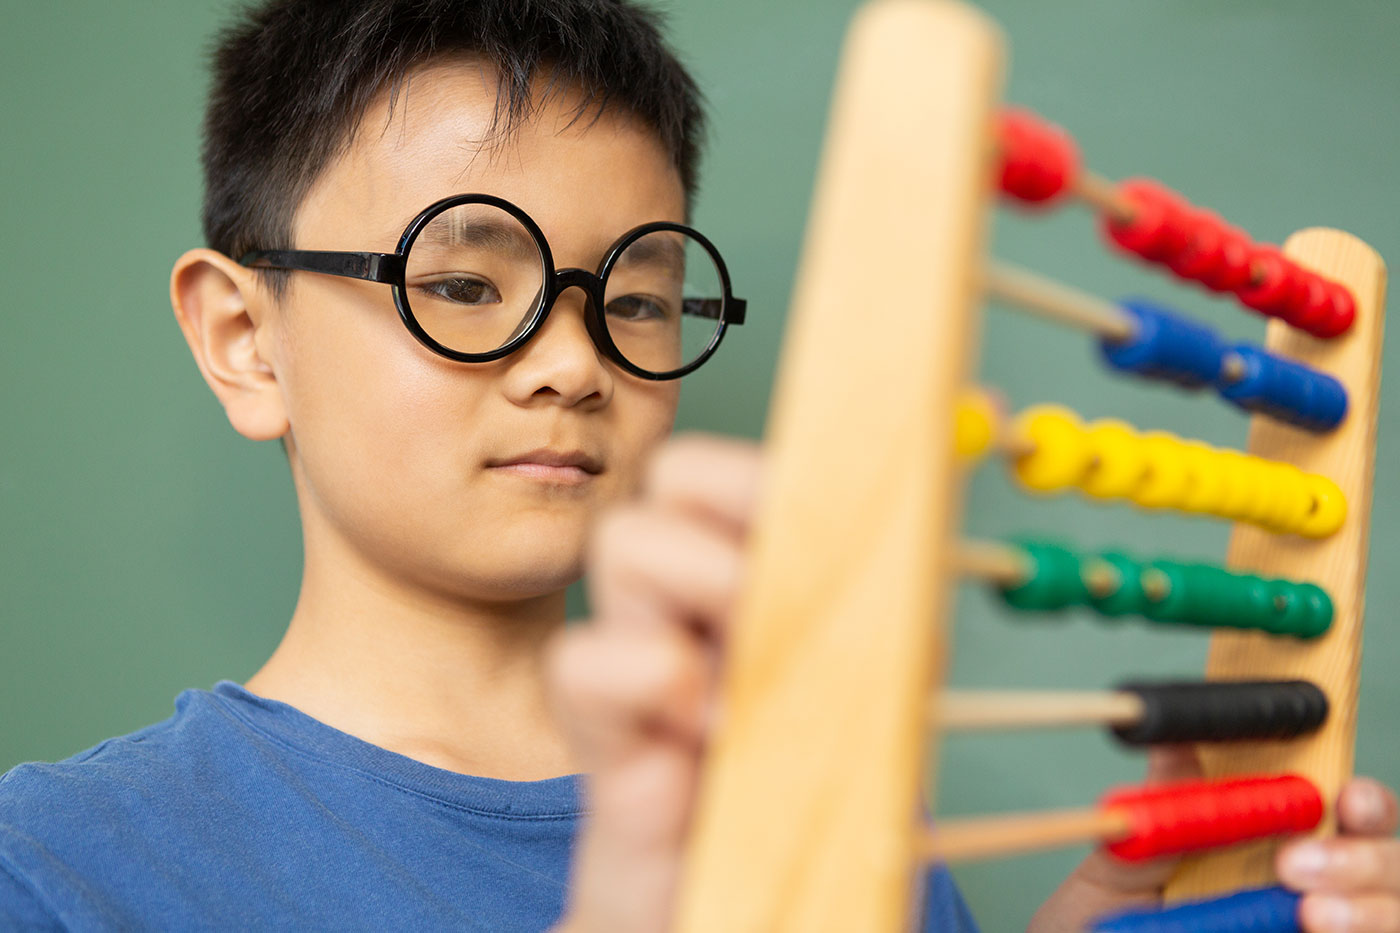 boy-learning-math-with-abacus-in-a-classroom-at-DE9N3LX-min.jpg